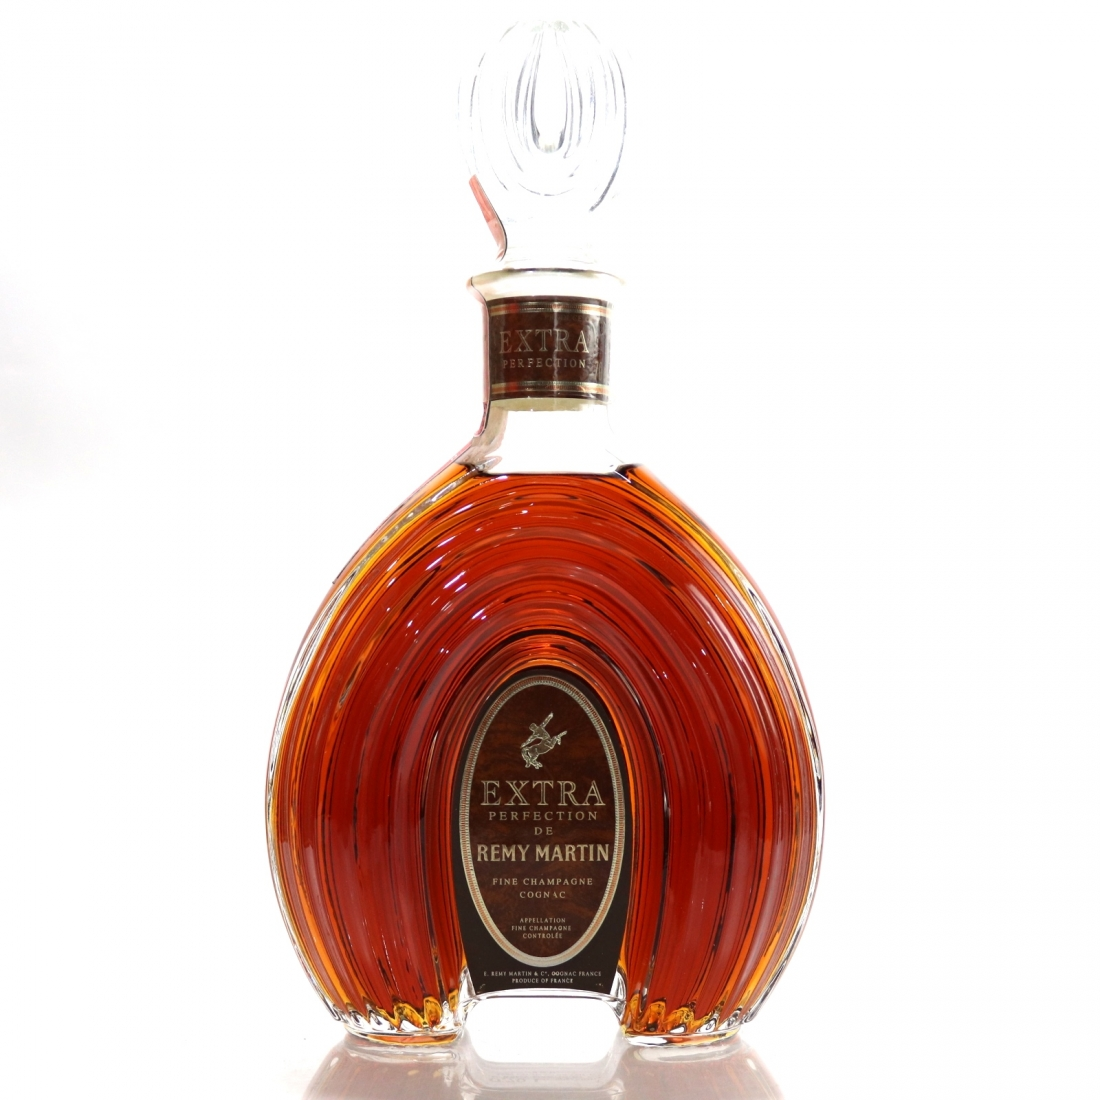 Remy Martin Extra Perfection Fine Champagne Cognac